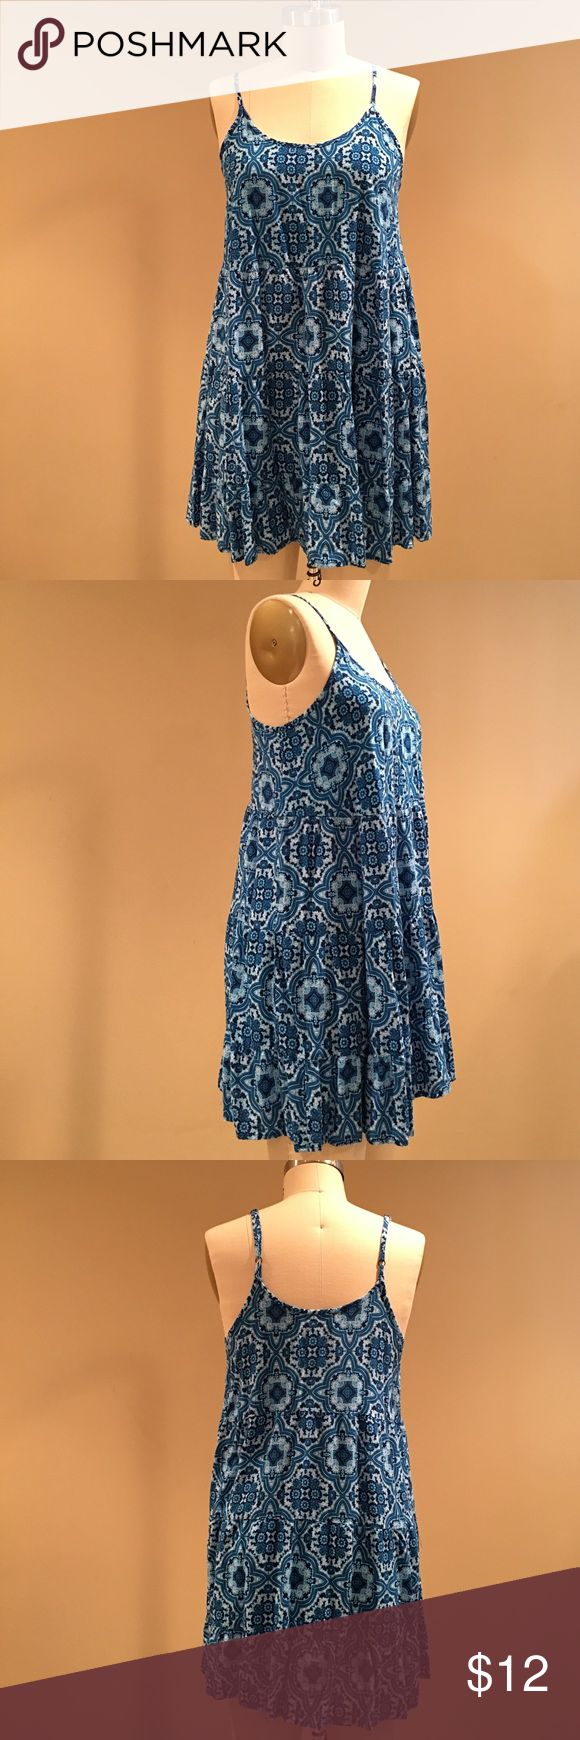 Mossimo Bohemian Summer Dress *Fits like a medium* The perfect dress for summer: Lightweight, comfortable, and loose-fitting! Great for music festivals! Also looks really cute with skinny jeans! 100% rayon. Machine washable. Mossimo Supply Co. Dresses Mini